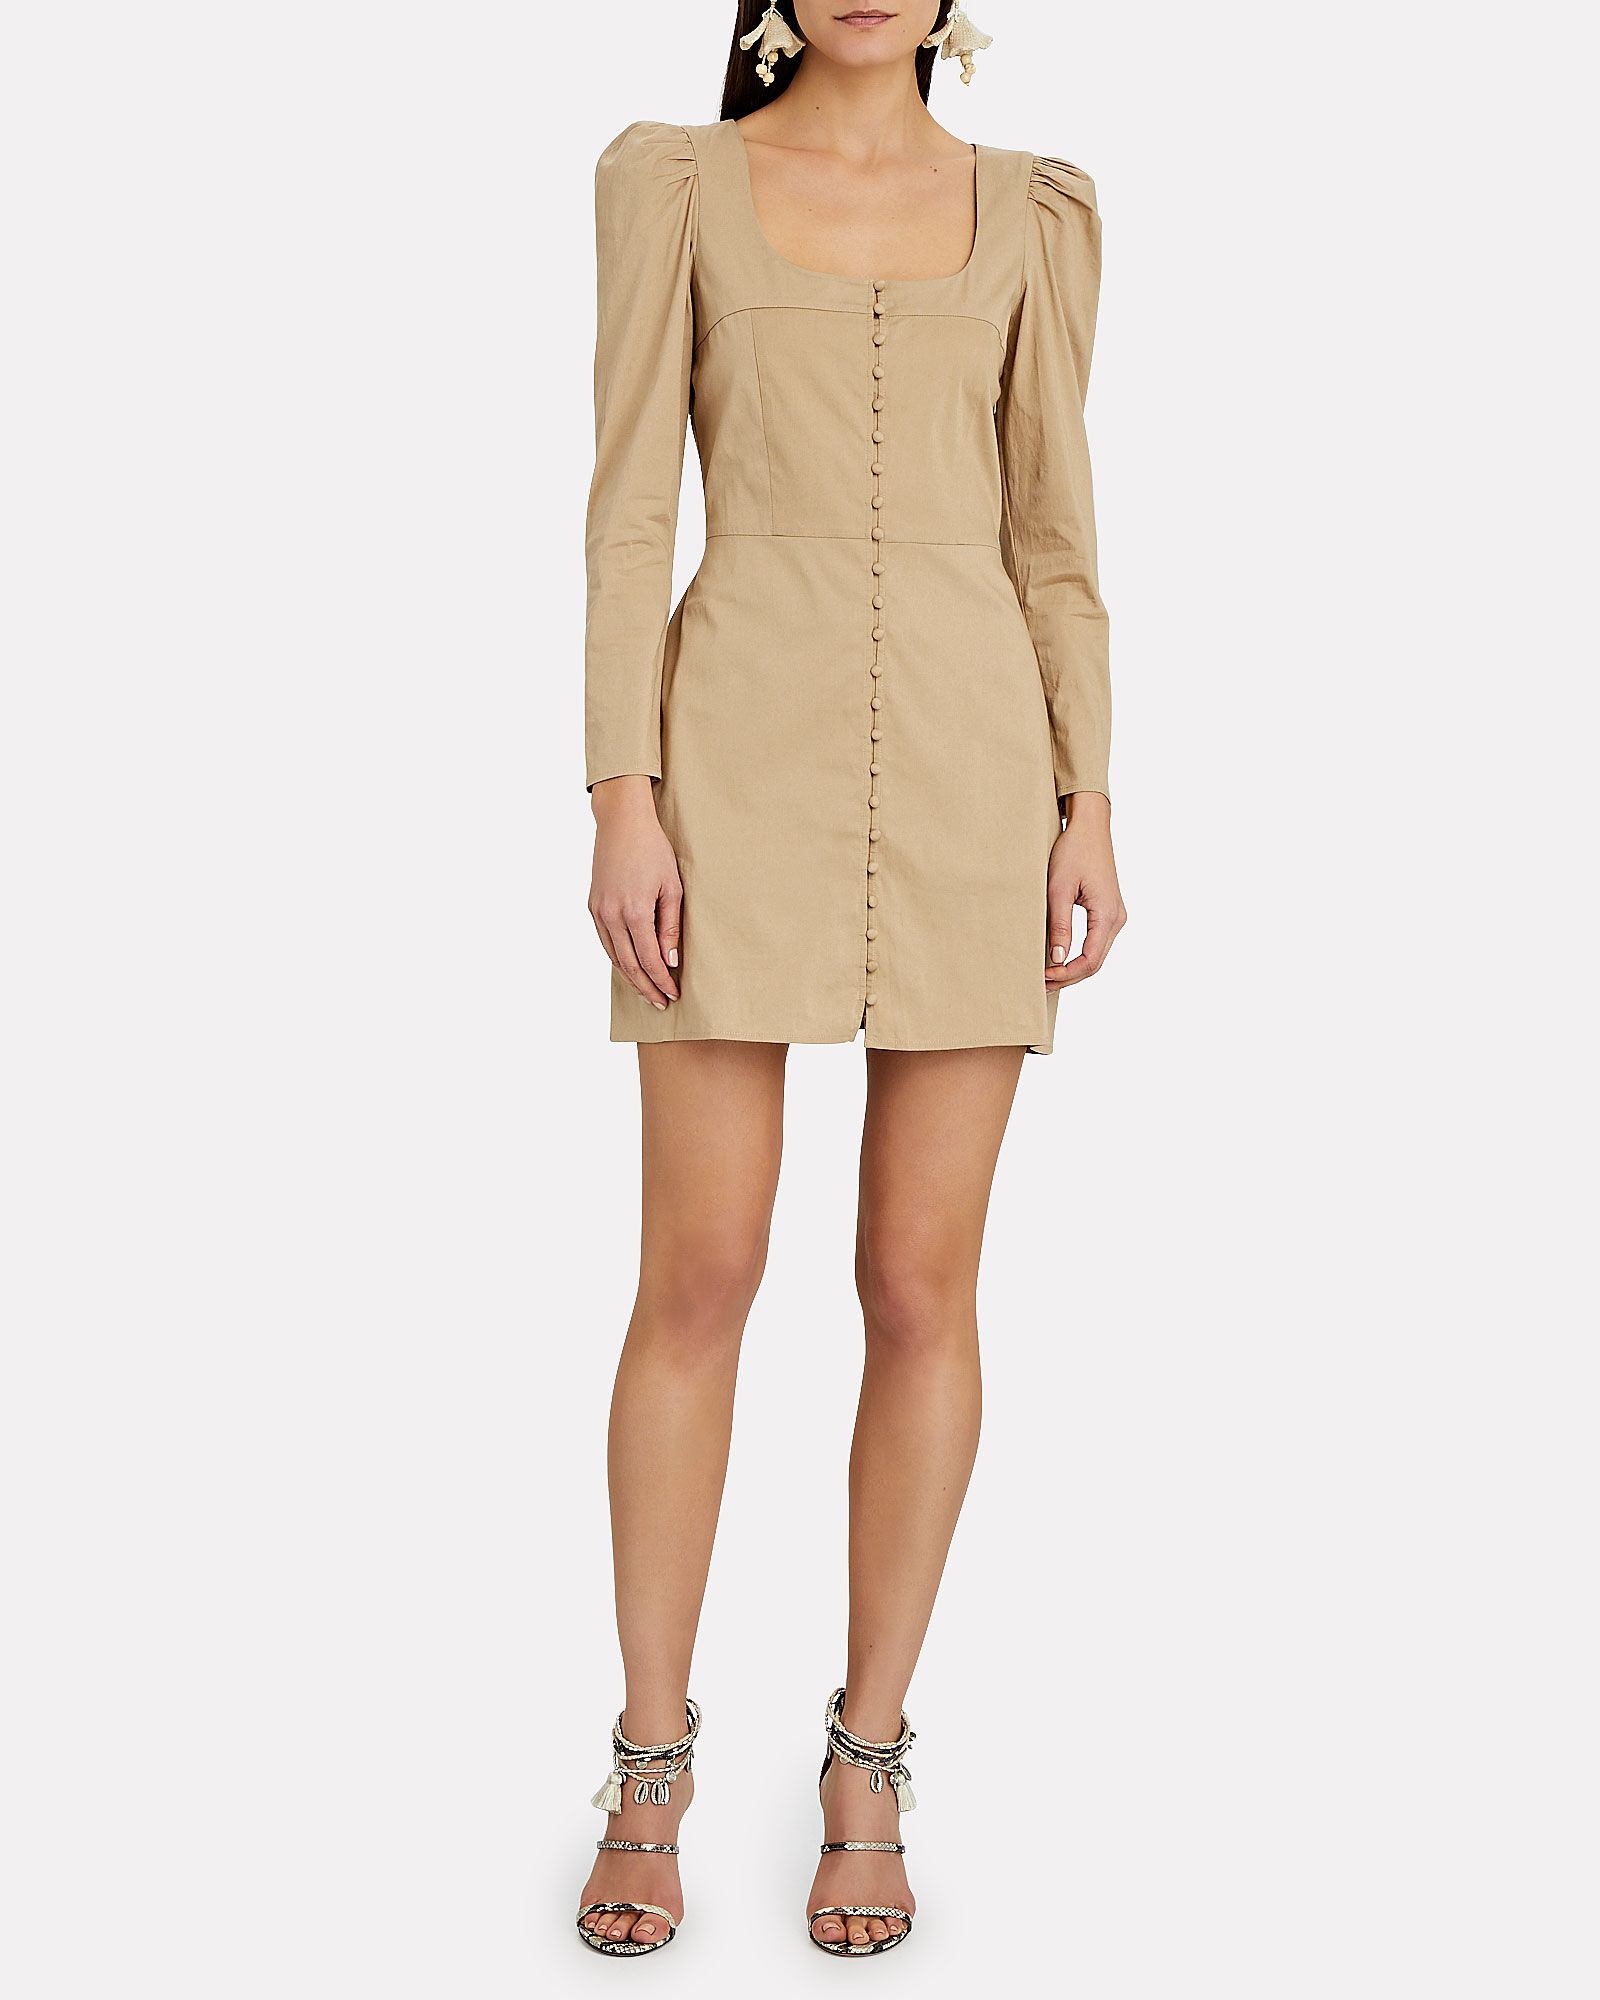 Sandrine Cotton Mini Dress, BEIGE, hi-res